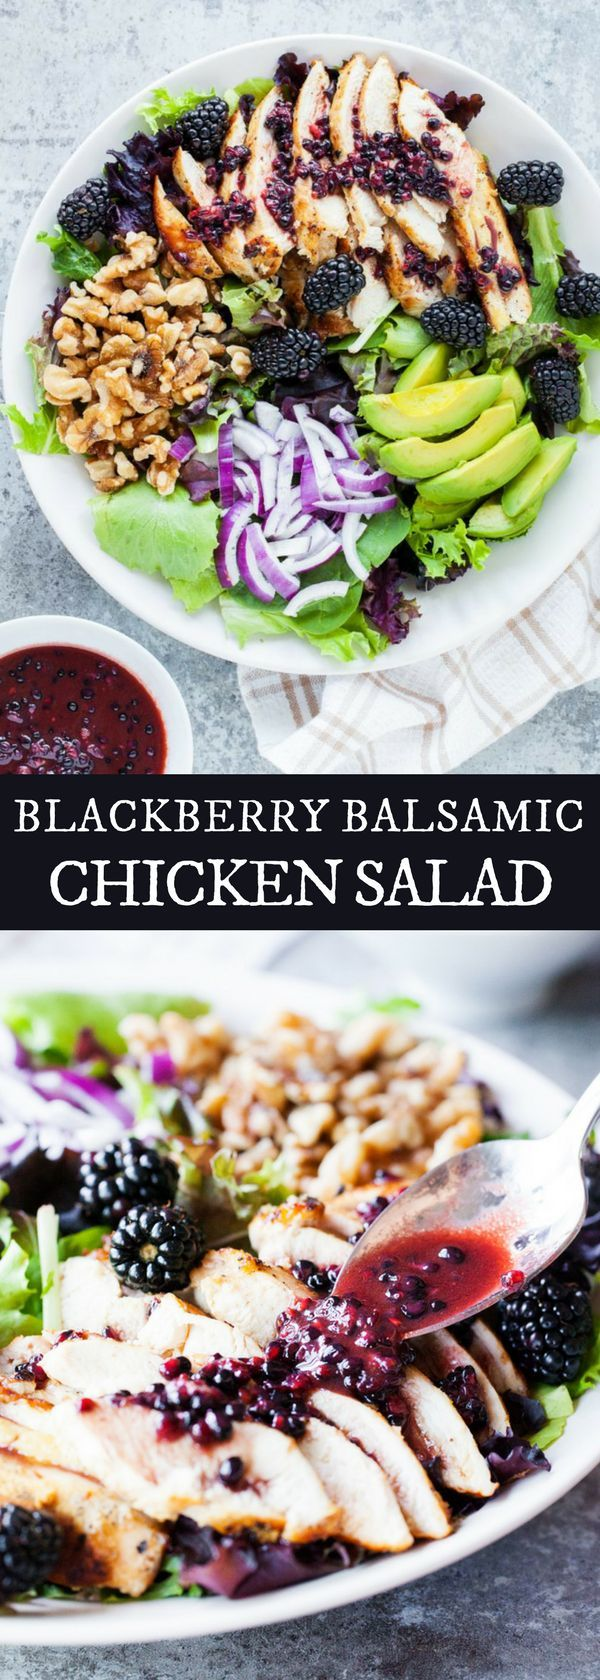 BLACKBERRY BALSAMIC CHICKEN SALAD | Looking for easy and healthy recipes this for Christmas and New Year?This blackberry balsamic chicken salad is full of fresh and juicy blackberries and drizzled over with a blackberry dressing. Check us out #iamhomesteader for more healthy homemade cooking and easy homesteading recipes you can do at home.  #Homestead #homesteading #food #healthyrecipes #healthy #recipeoftheday #recipeideas